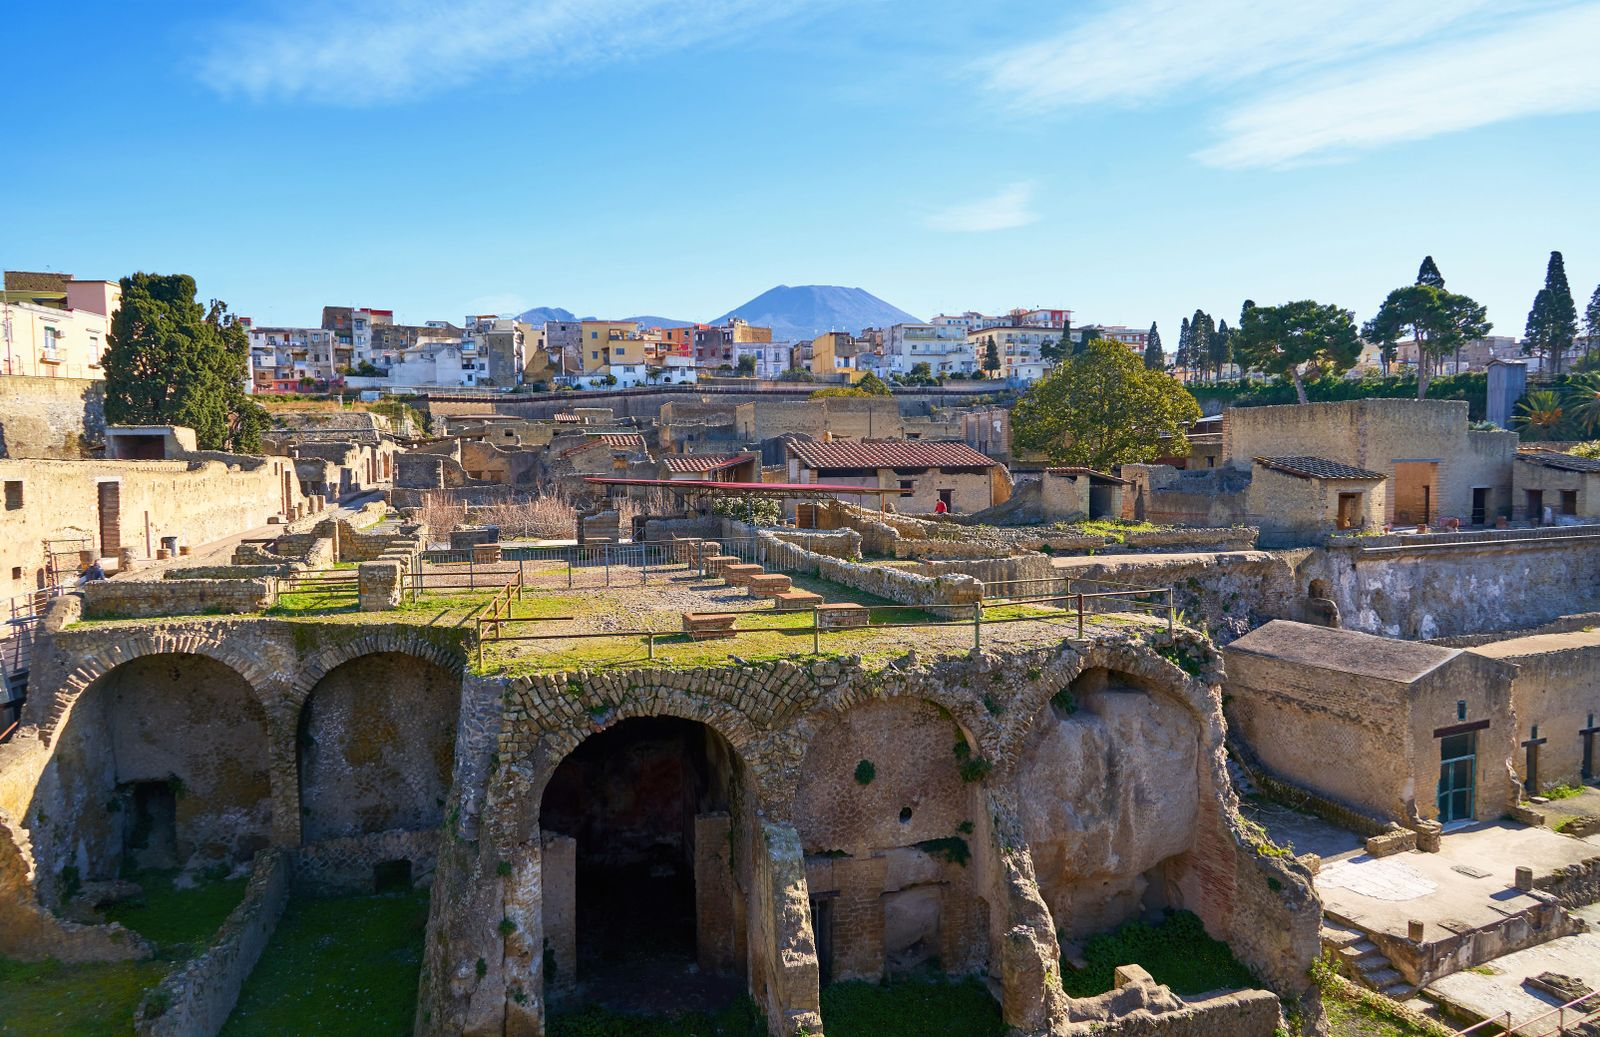 Archeological Site of Herculaneum in Naples, travel in Italy.